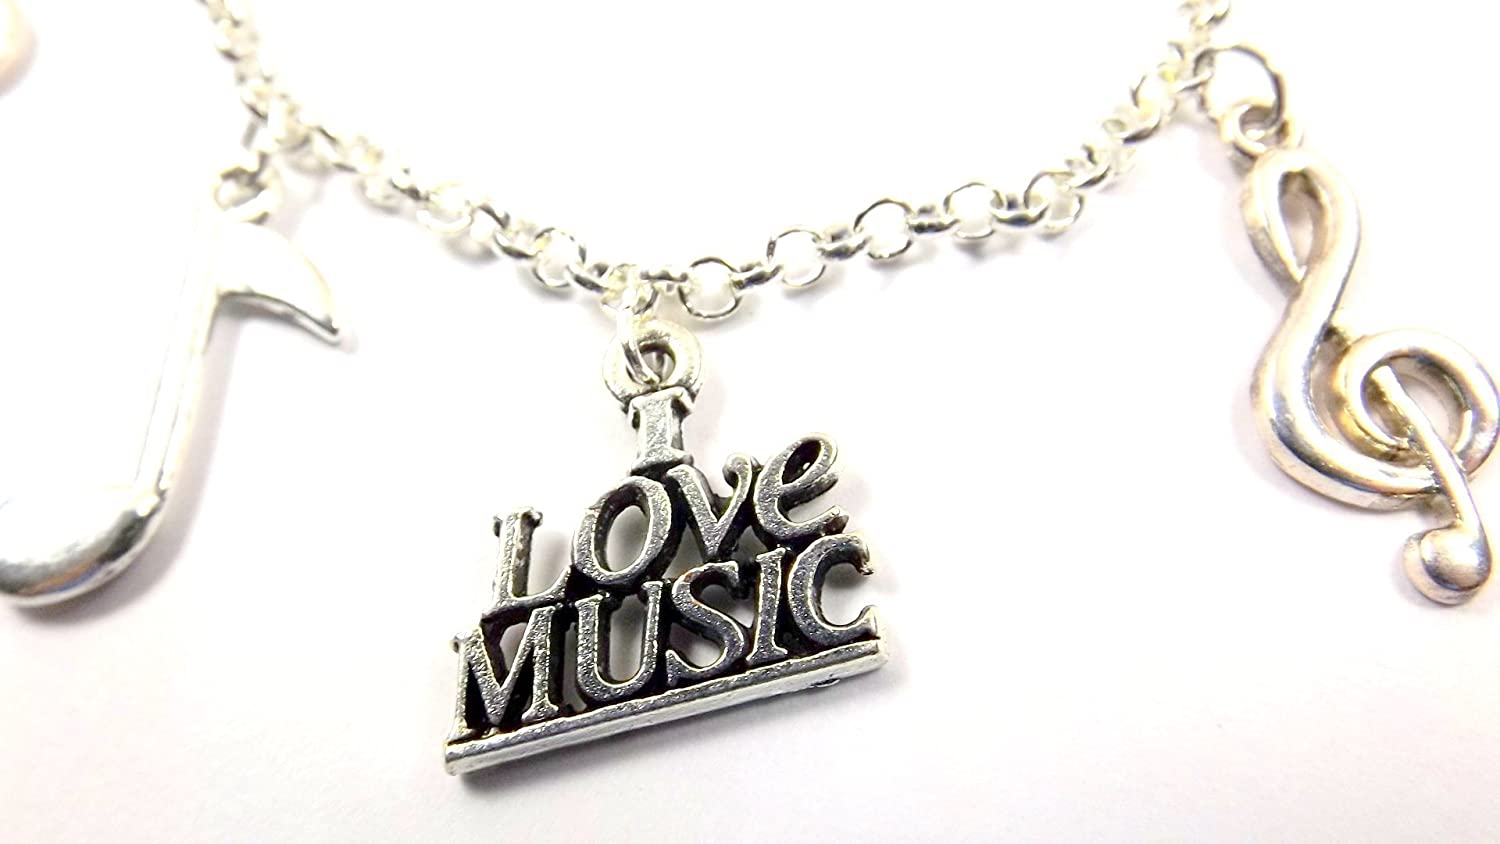 Sizes 8-11 Chain Choice I Love Music Charms Ankle Bracelet Music Lovers Anklet Silver-toned